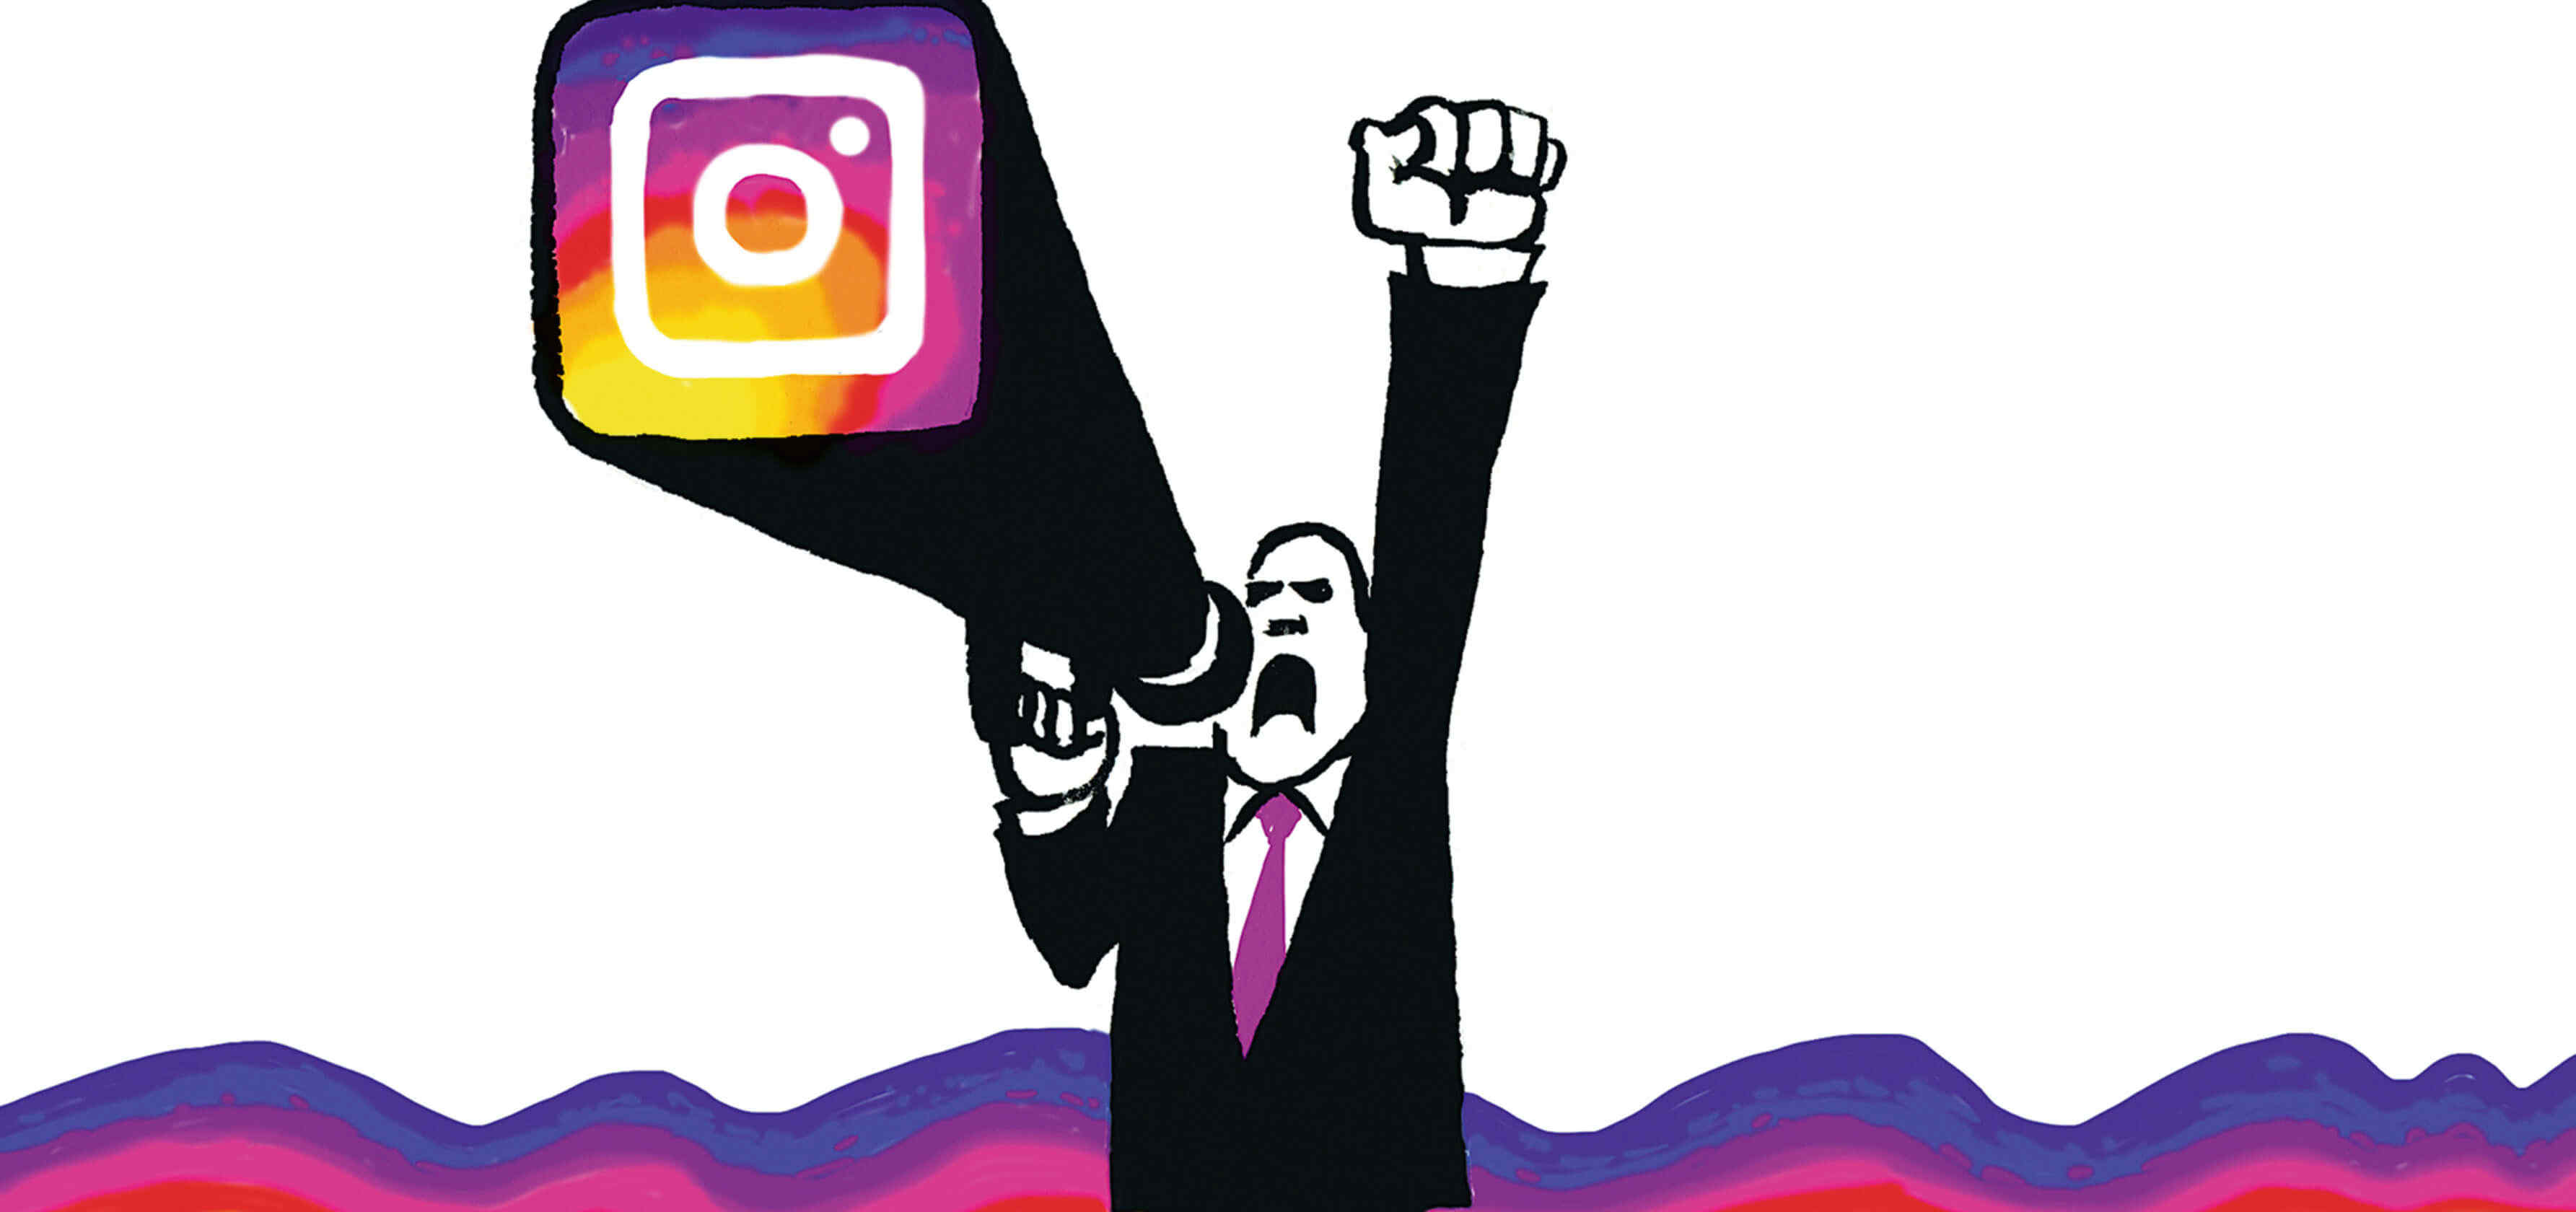 Instagram will be the new front-line in the misinformation wars